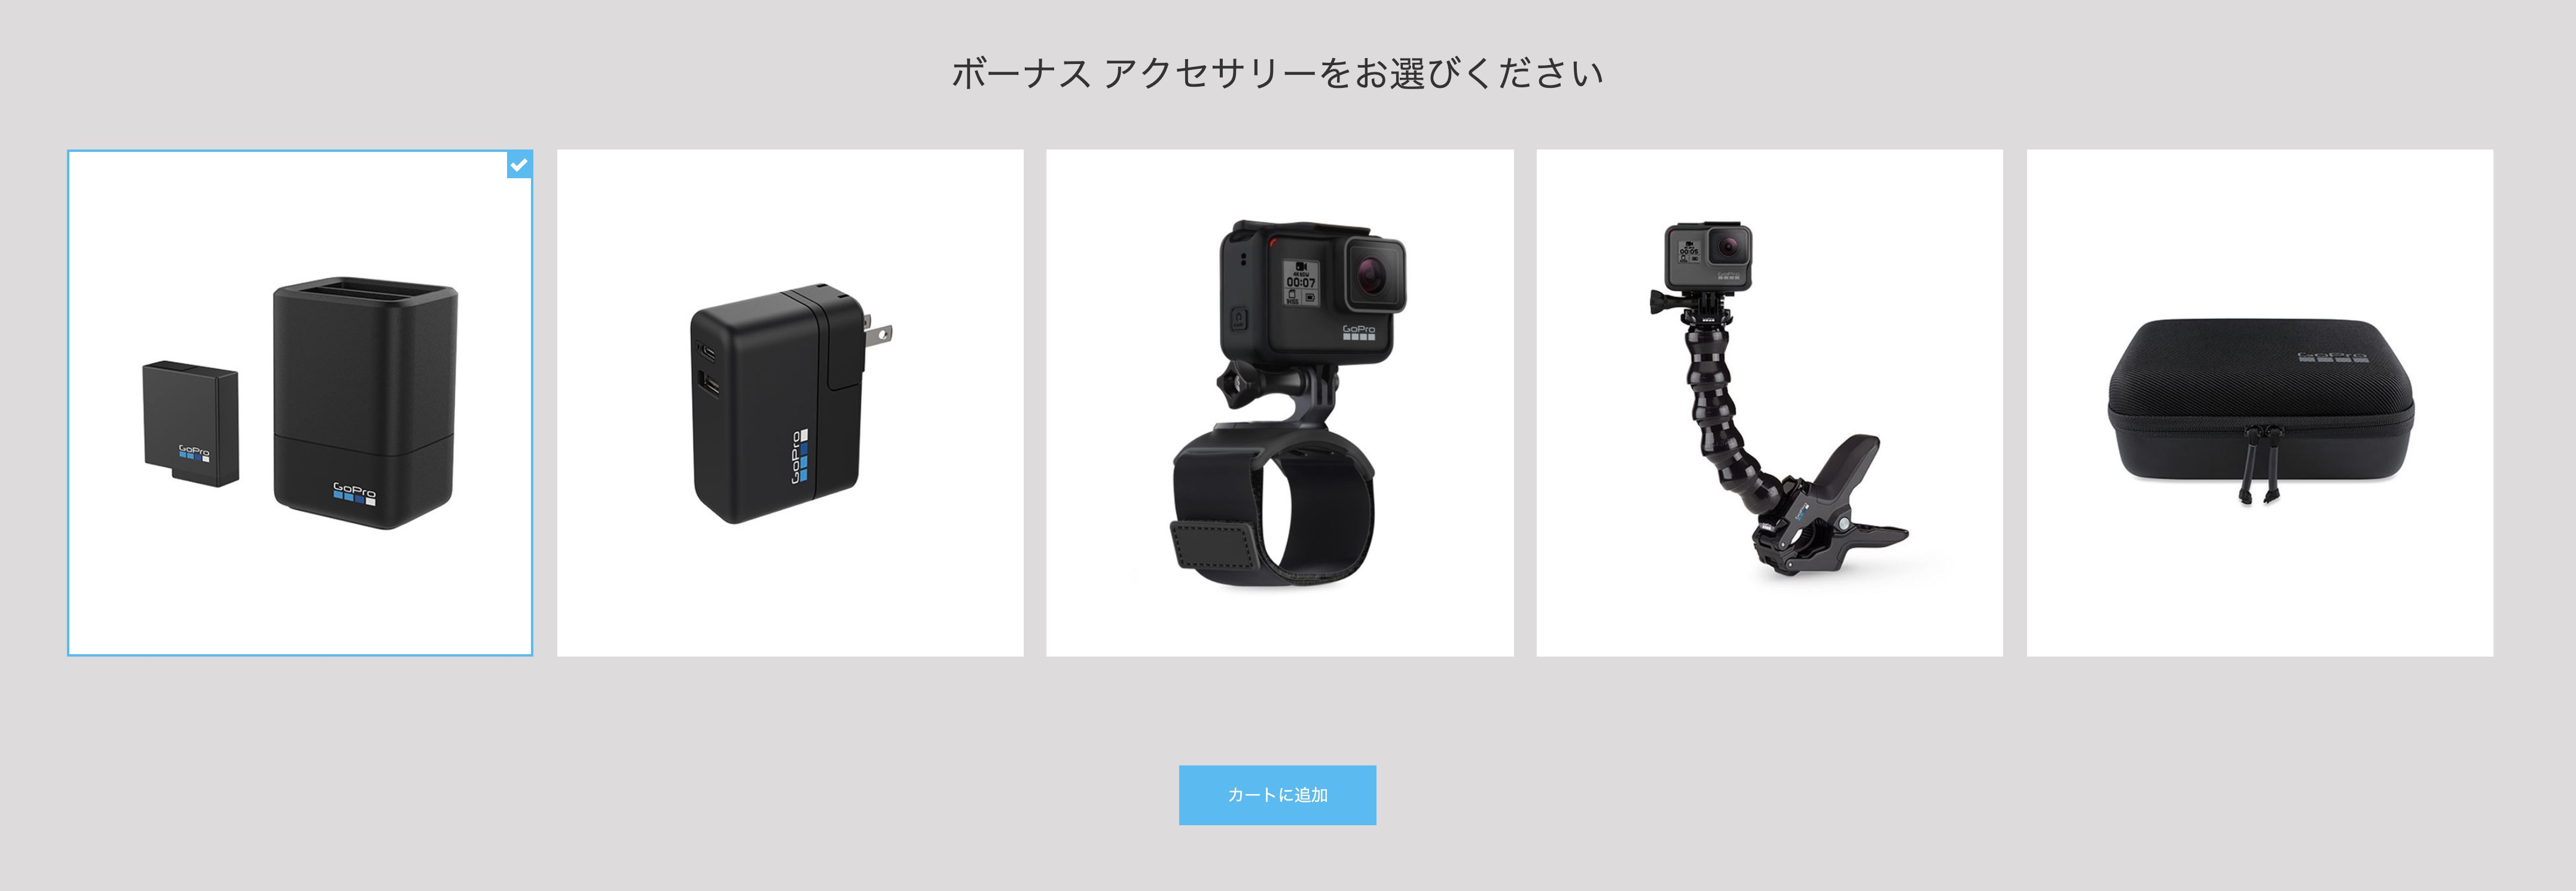 GoPro HERO7 Black キャンペーン